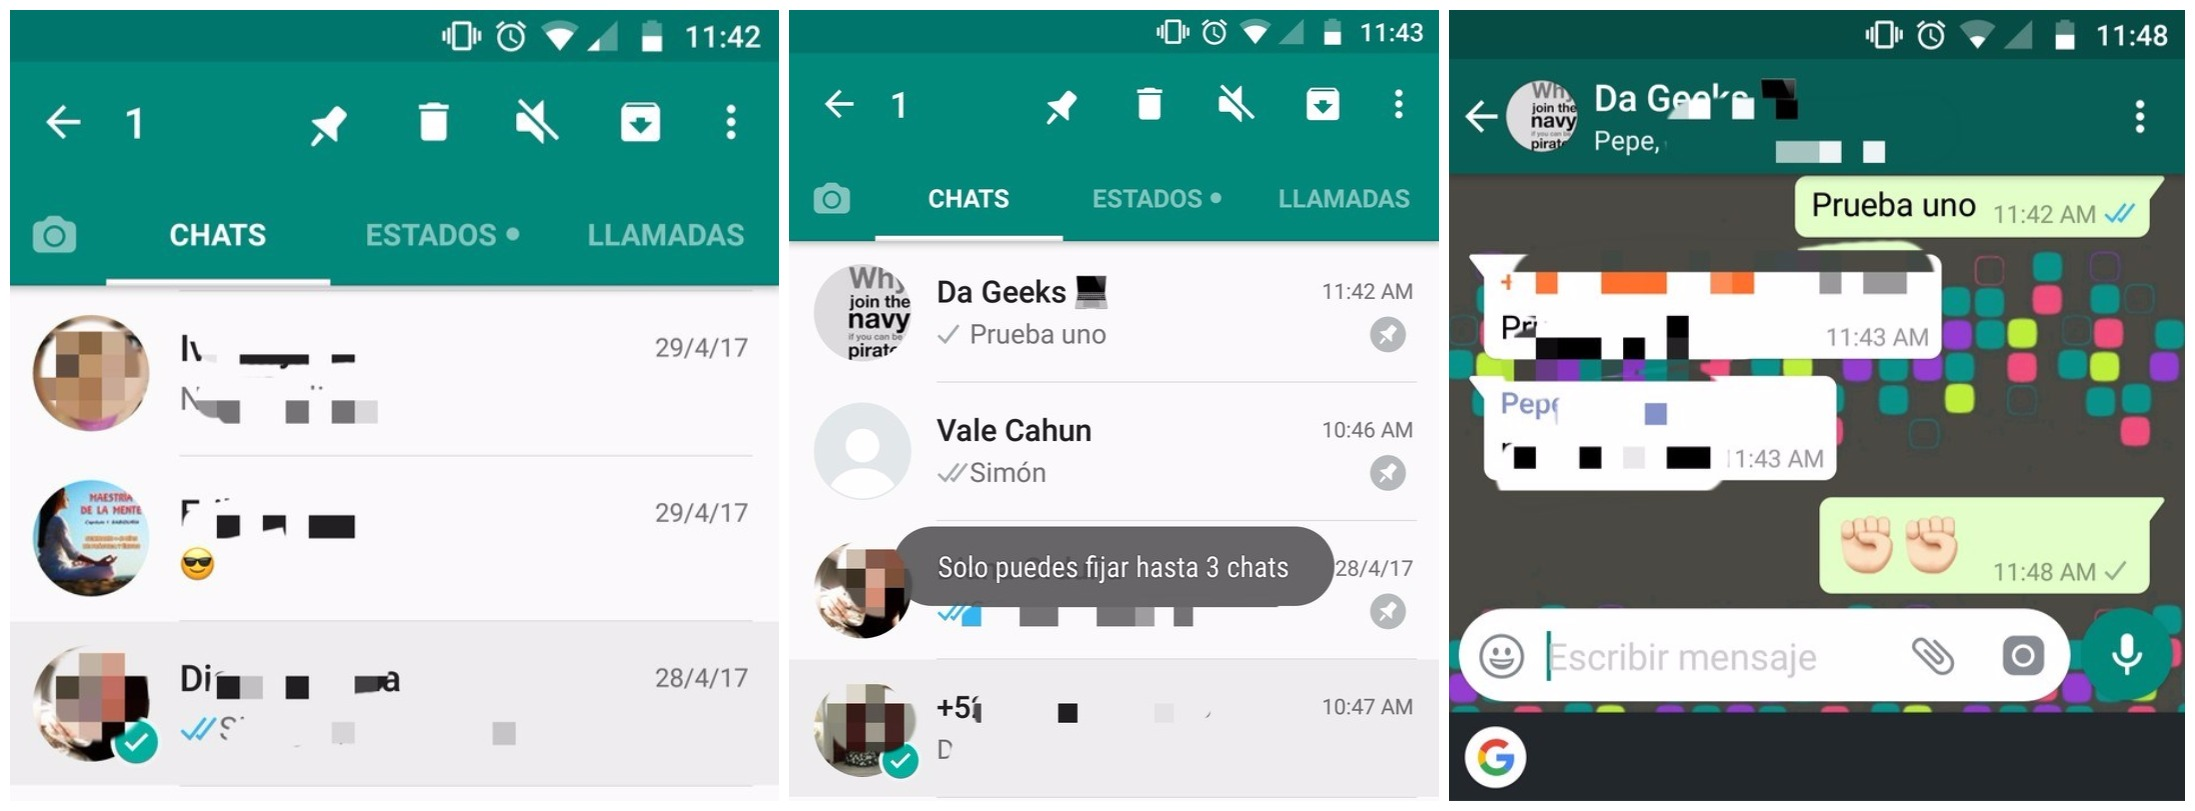 whatsapp fijar chats